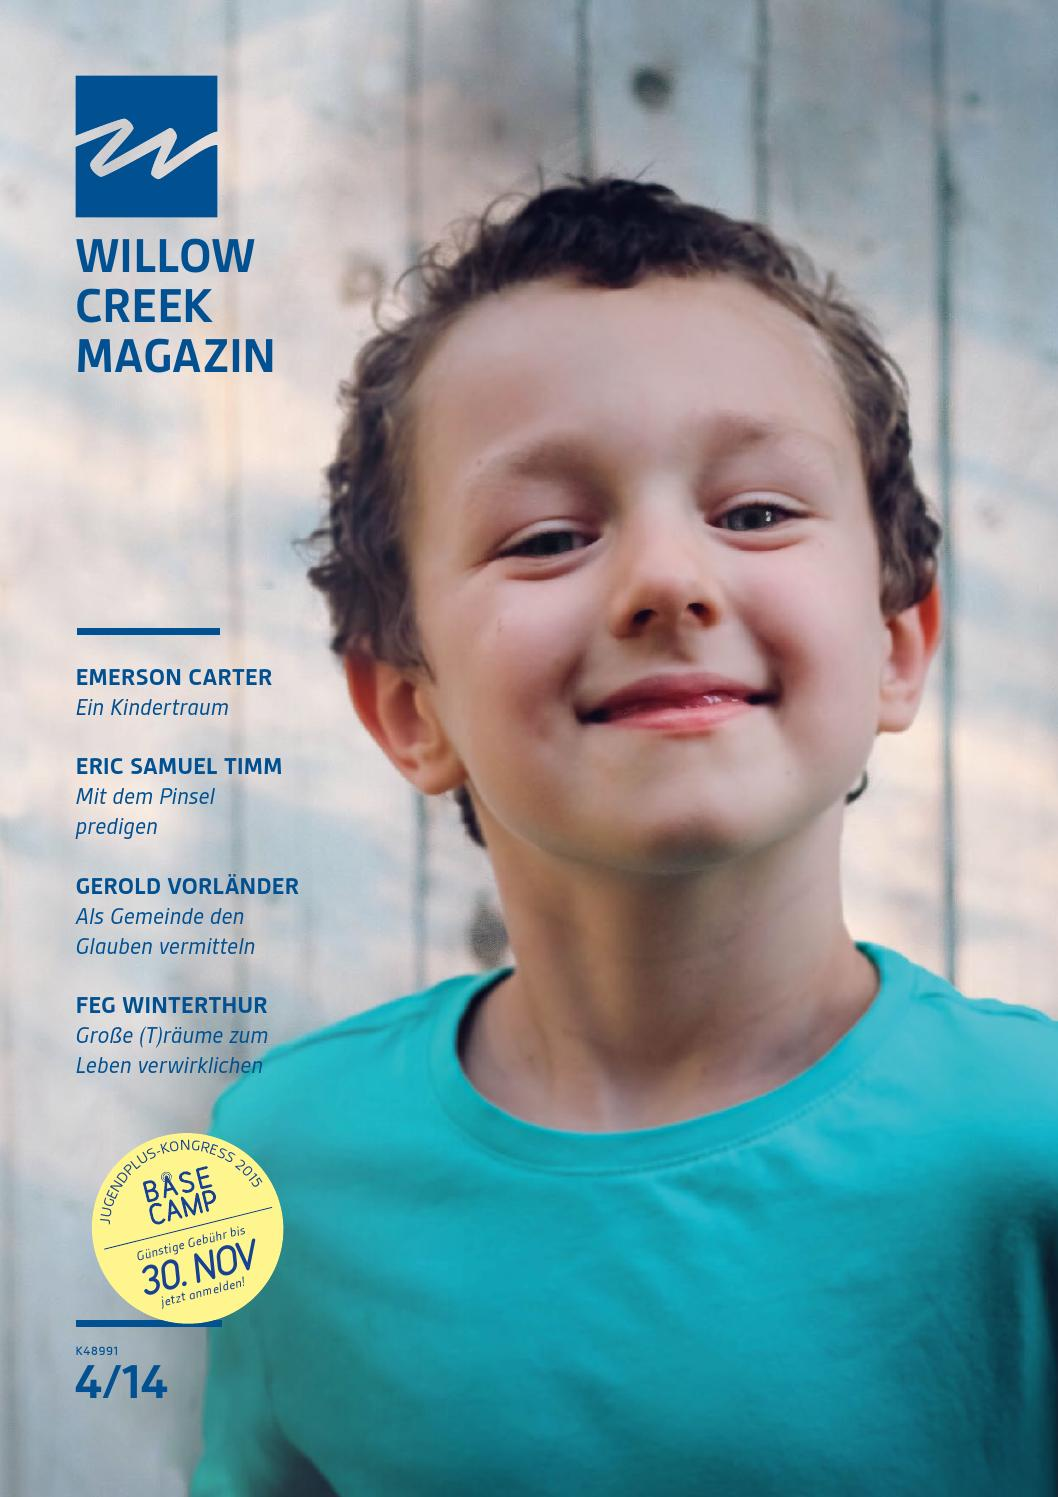 WILLOW CREEK MAGAZIN 4/14 by Willow Creek D/CH - issuu